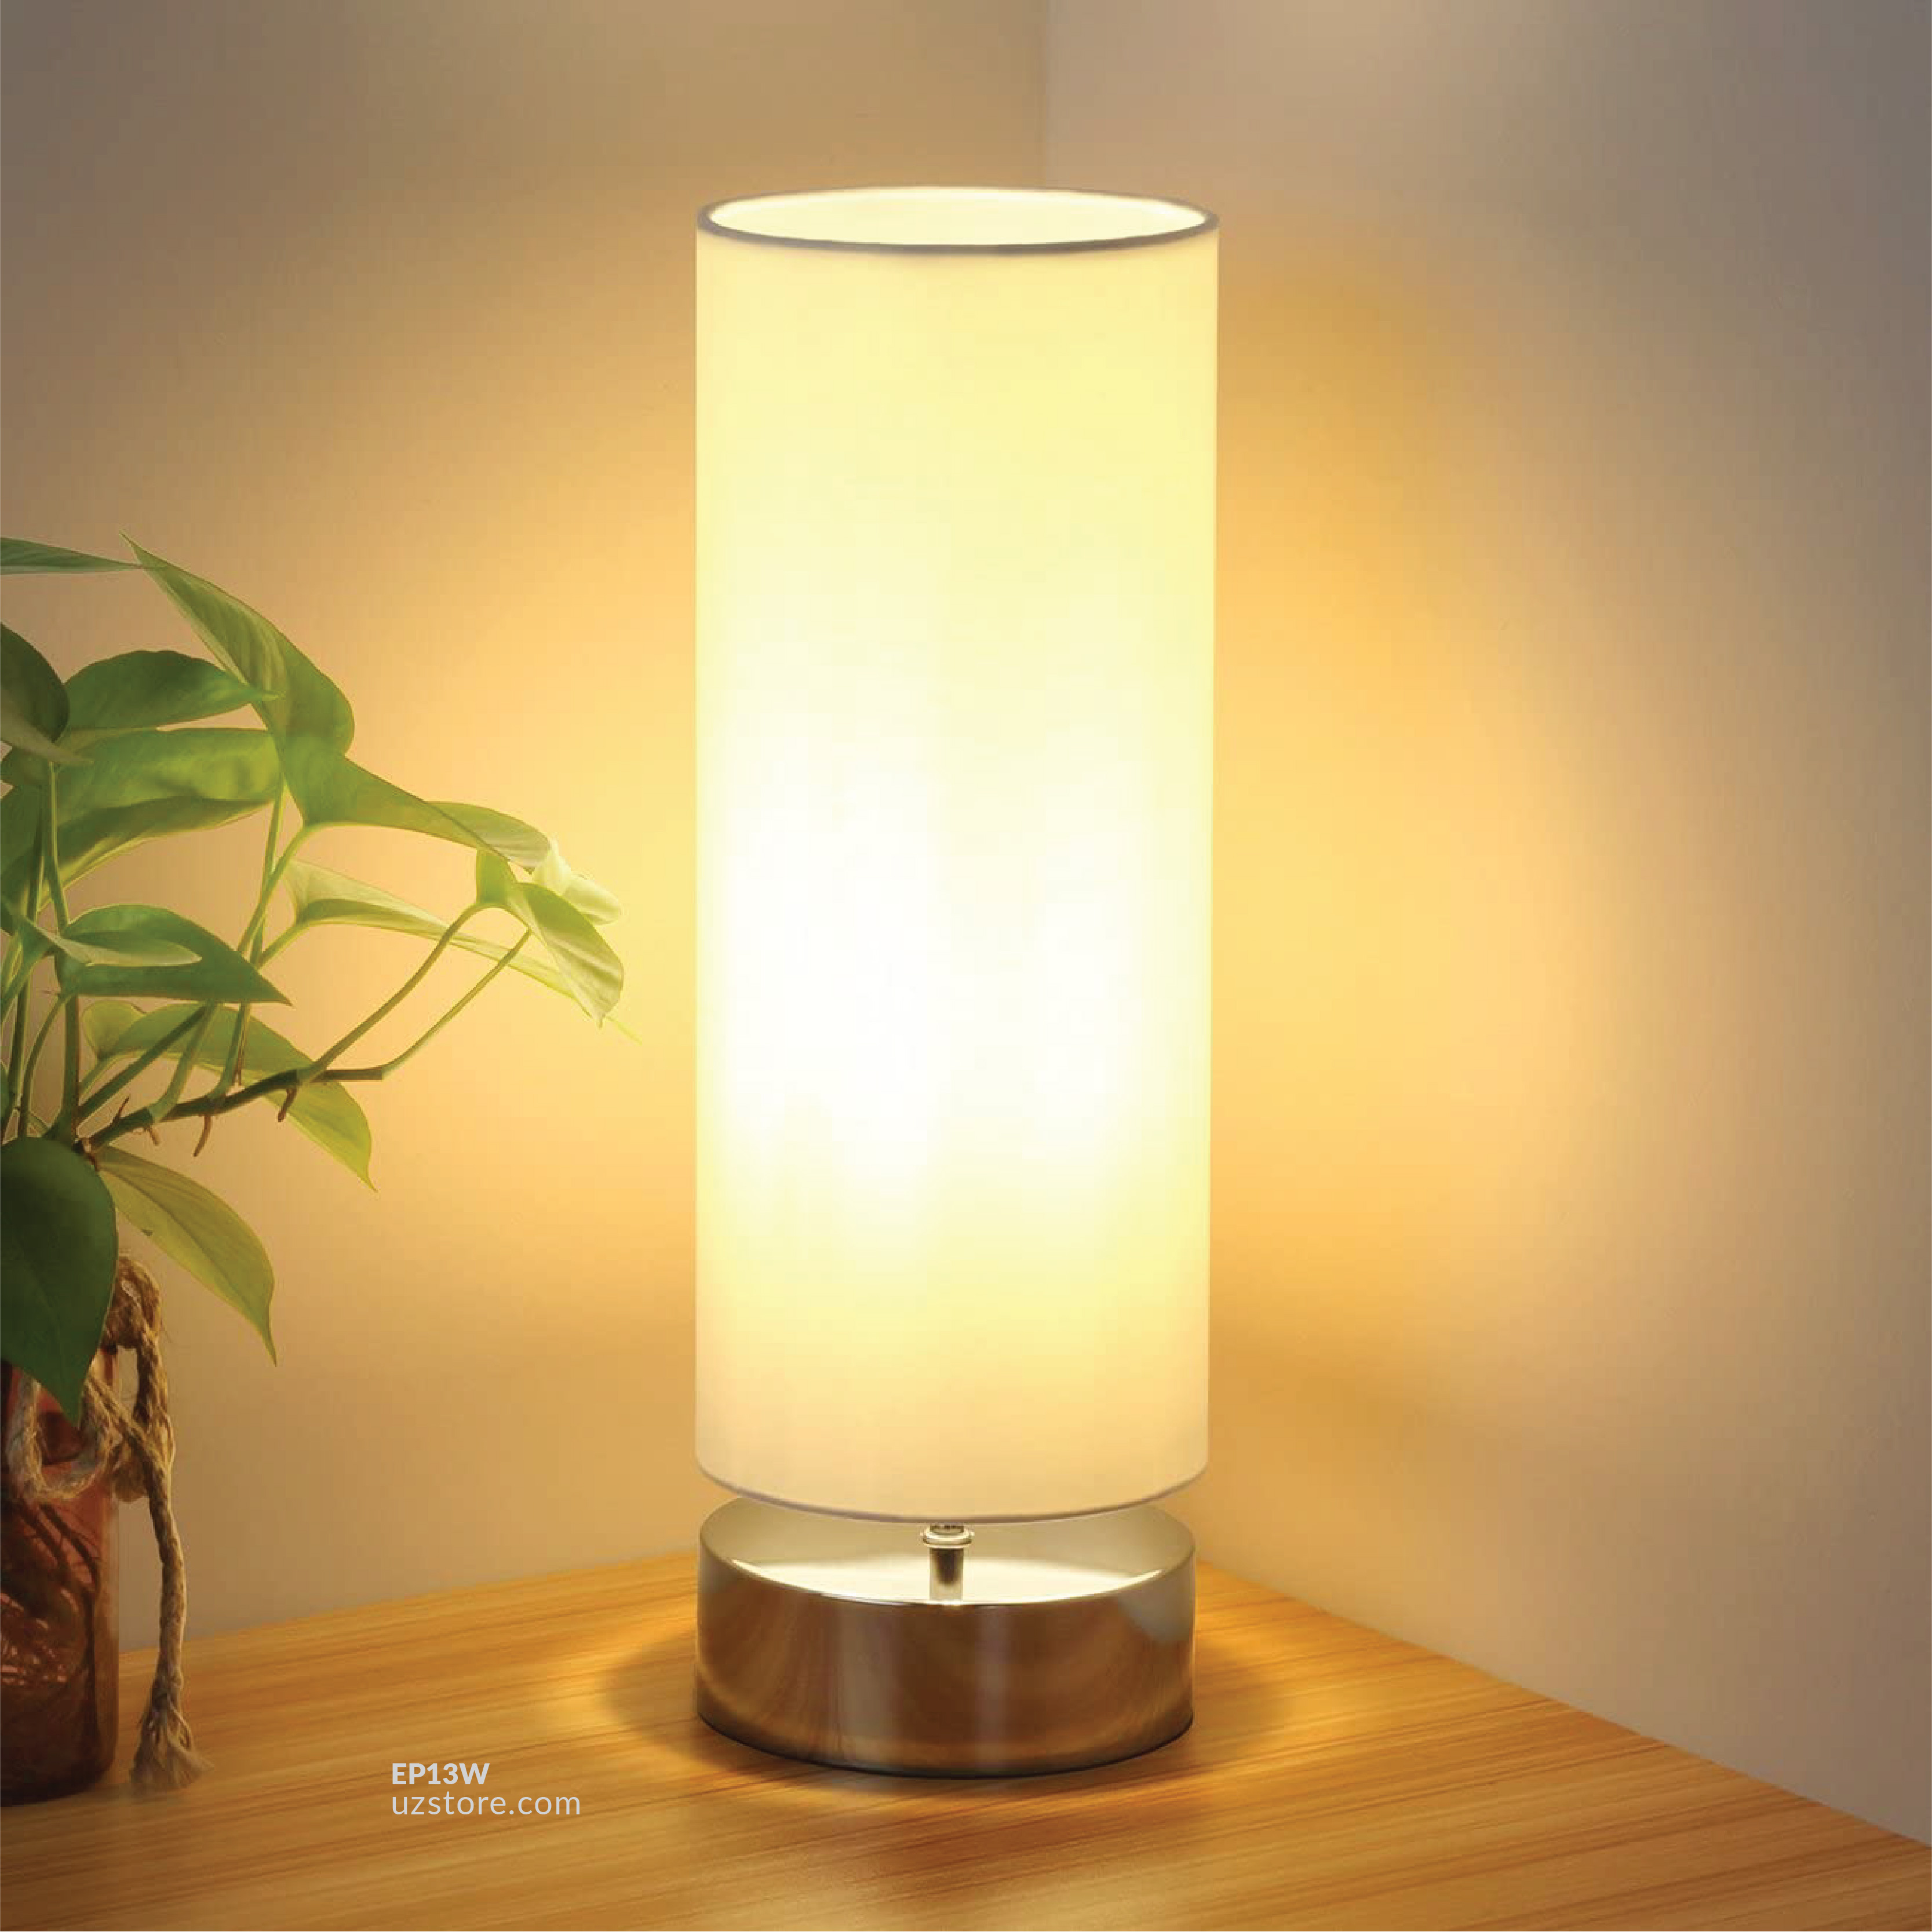 OPPLE LED Stick Lamp13W Warm whiteE27